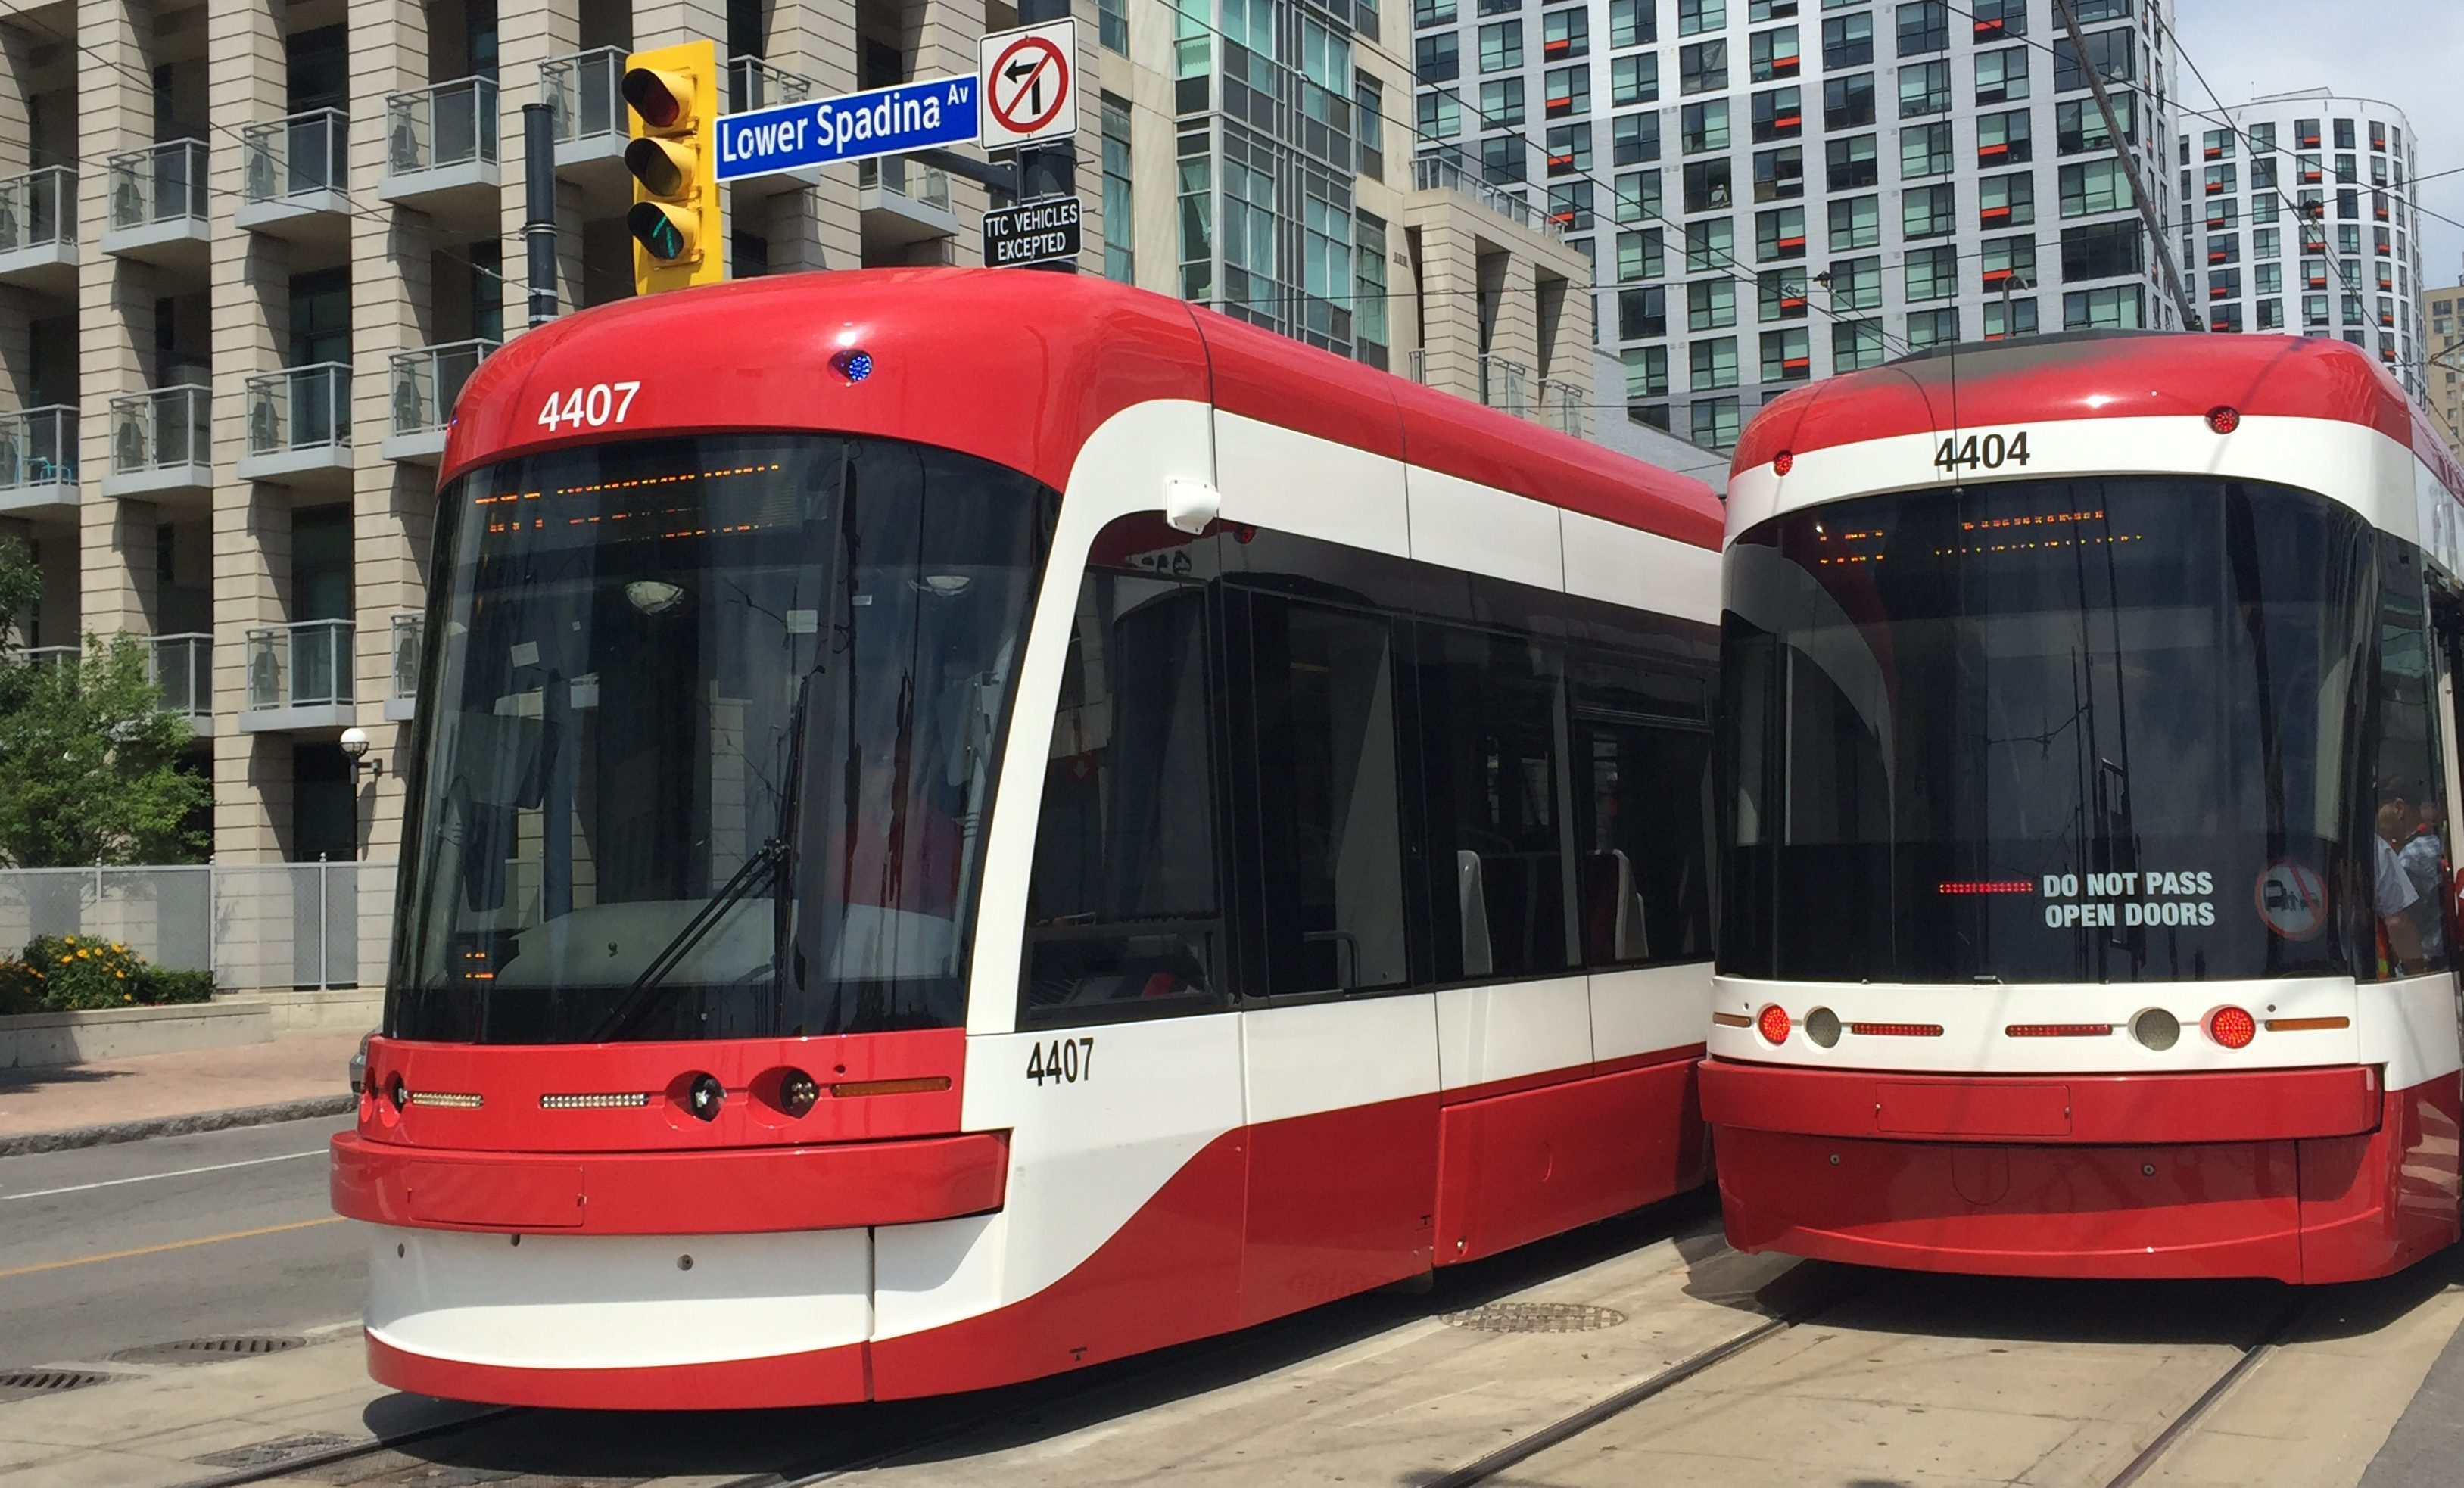 John Tory accuses Bombardier of complete failure on TTC streetcar order